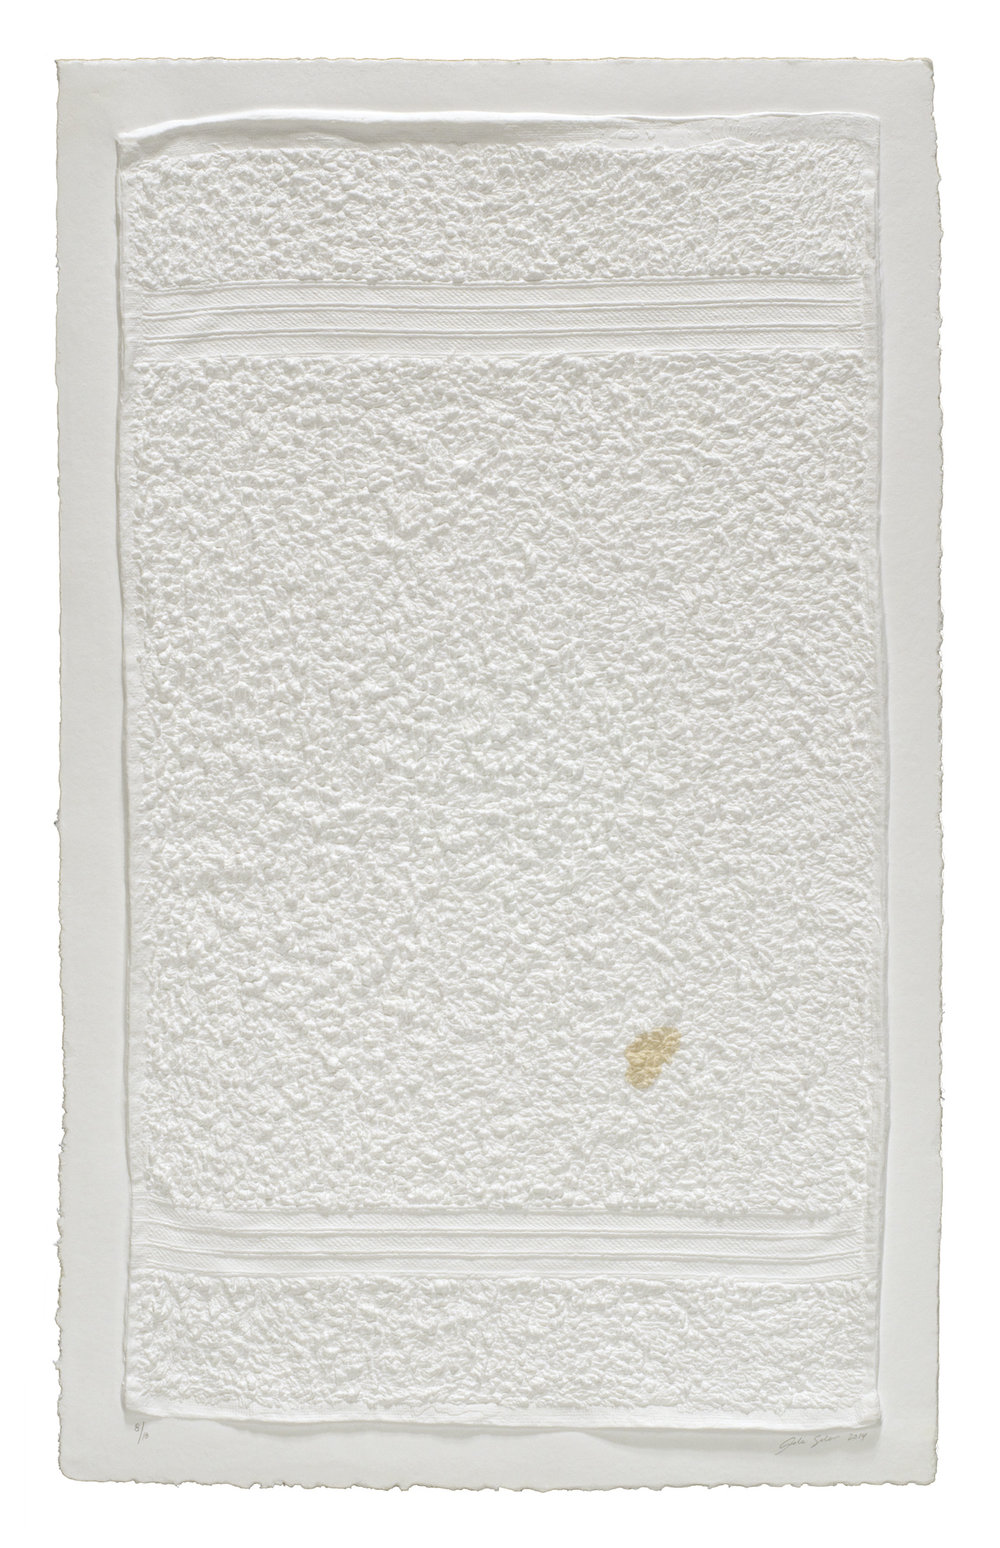 Analia Saban , Three Stripe Hand Towel (with Stain), 2014 Mixografia monoprint on handmade paper ed. 13/18 78,5 x 50,5 cm - 30 7/8 x 19 7/8 inches (framed)